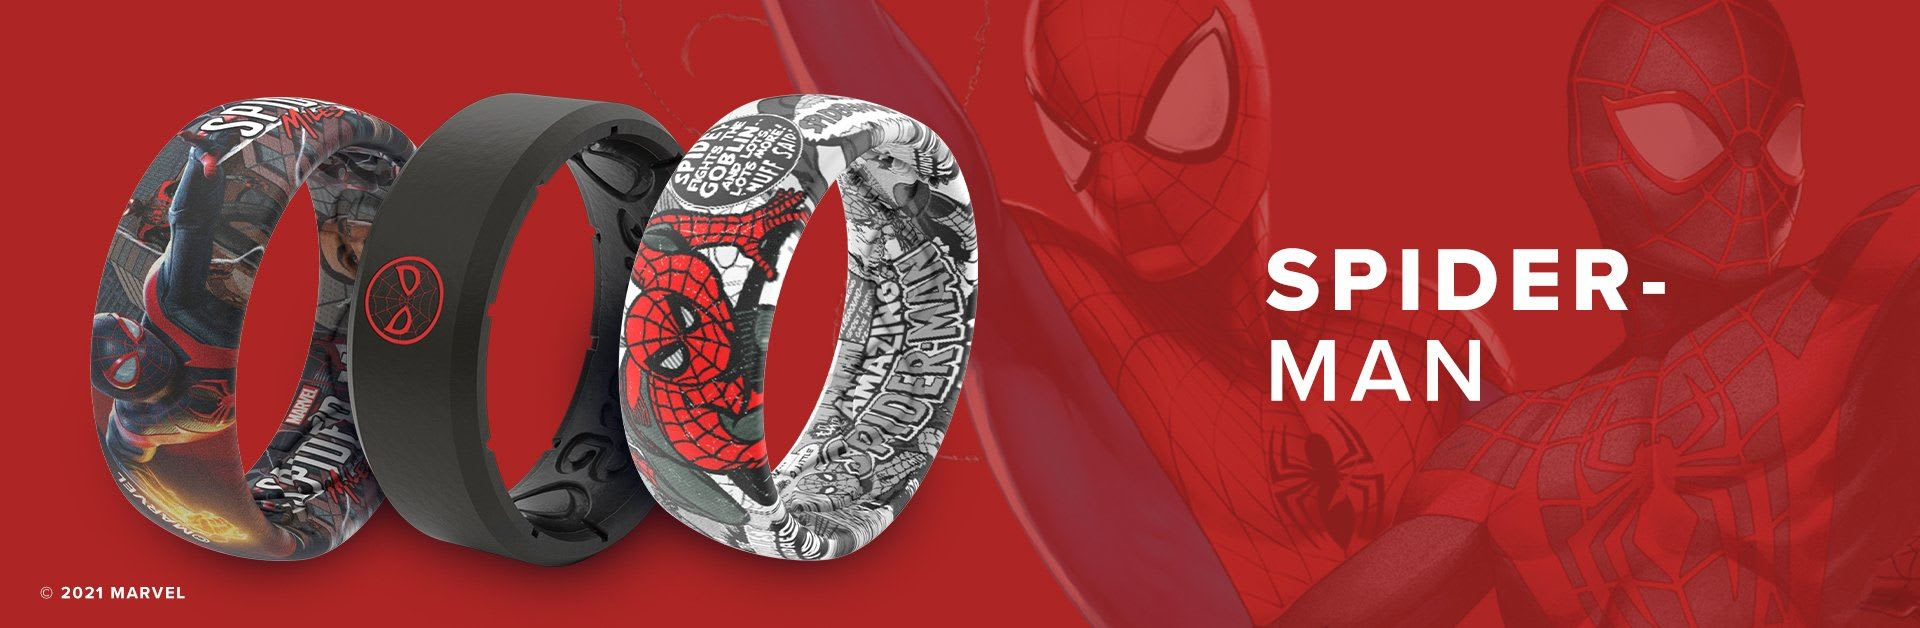 Spider-Man, three Spider-Man rings overlaid on red background with a faint Spider-Man behind